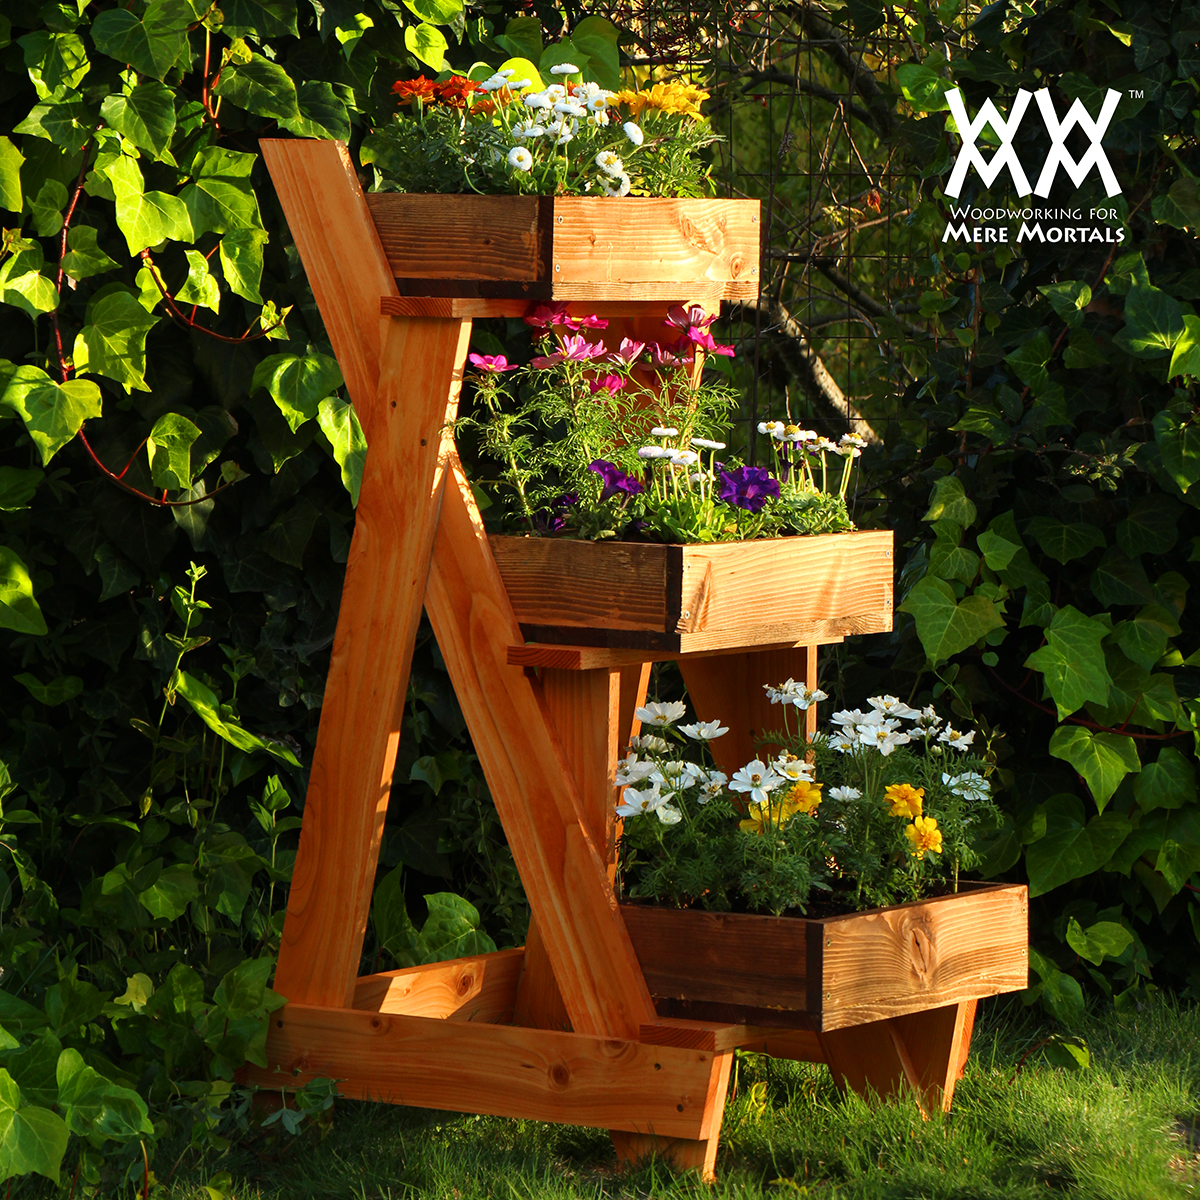 How to make a wood pallet planter 42 diy ideas for Garden planter plans